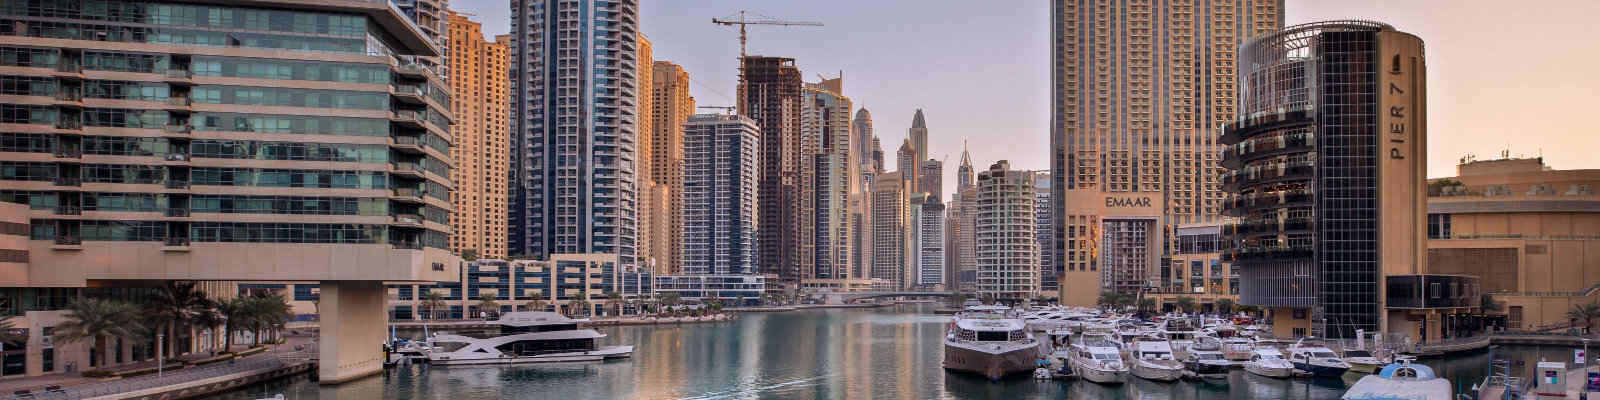 Dubai-expats-seeking-UK-mortgage-finance